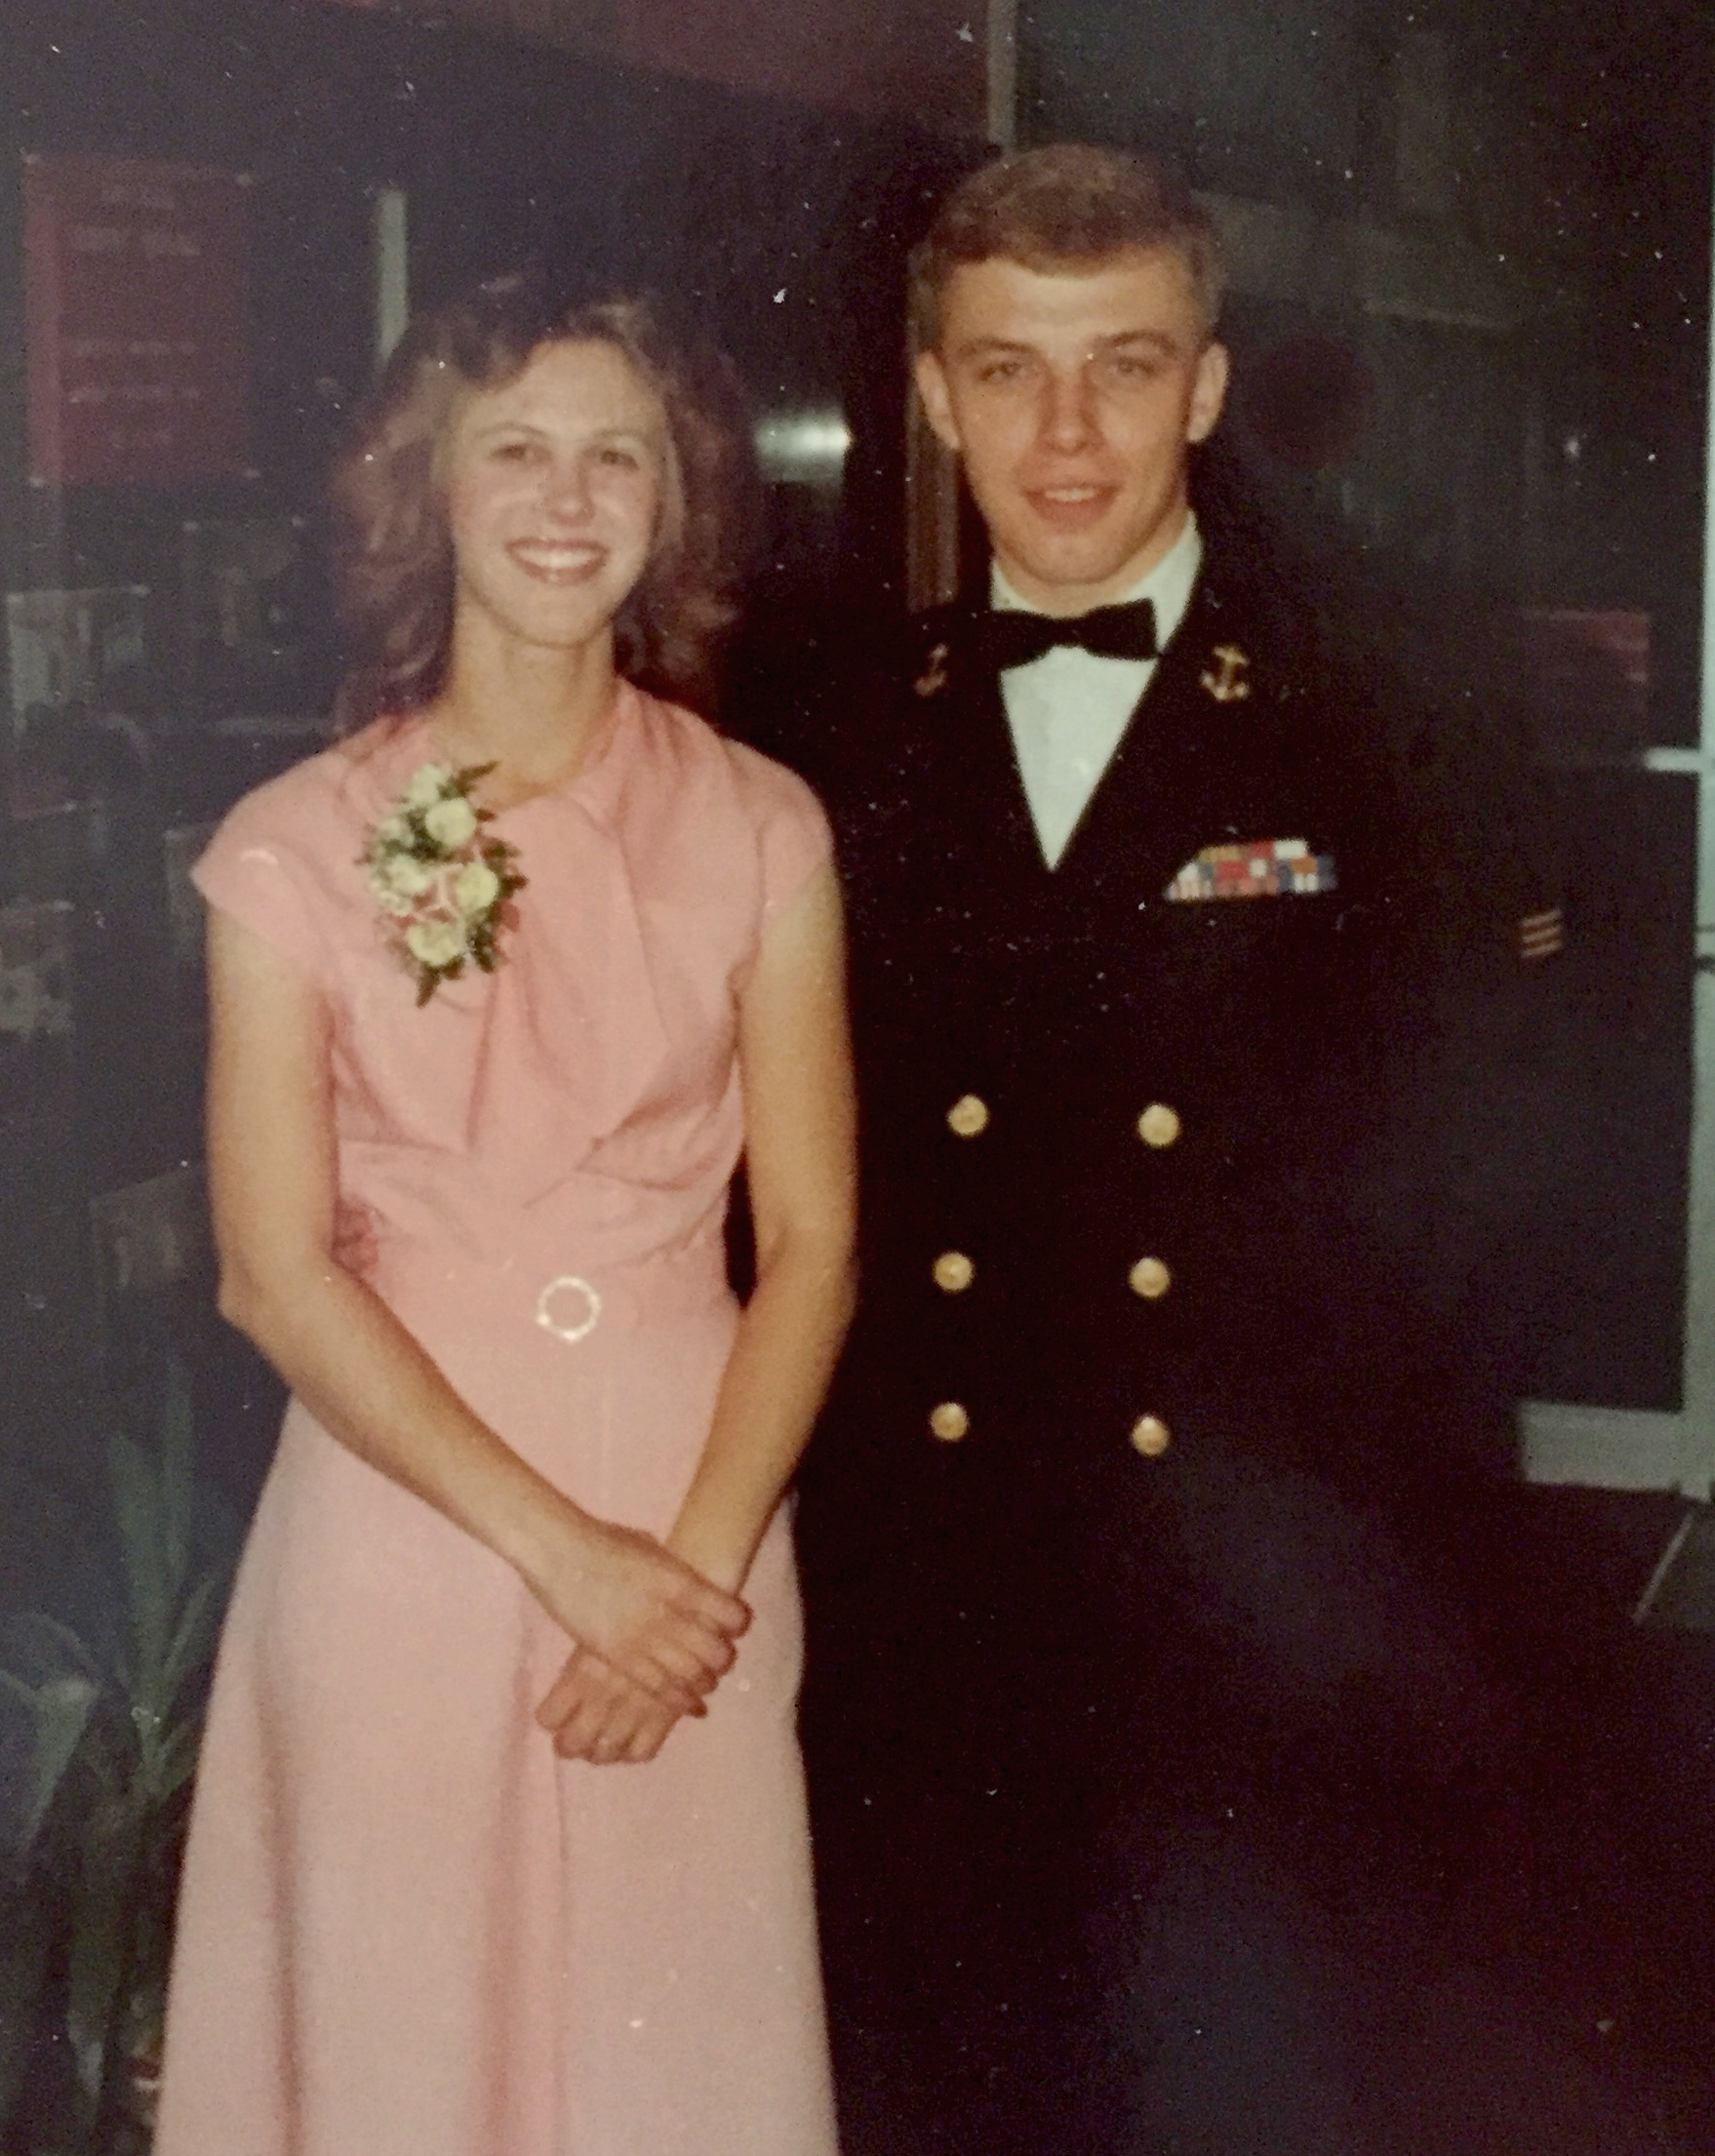 We got engaged in October, 1977, at the Navy ROTC ball. The dress I am wearing was sewn from a Vogue pattern.